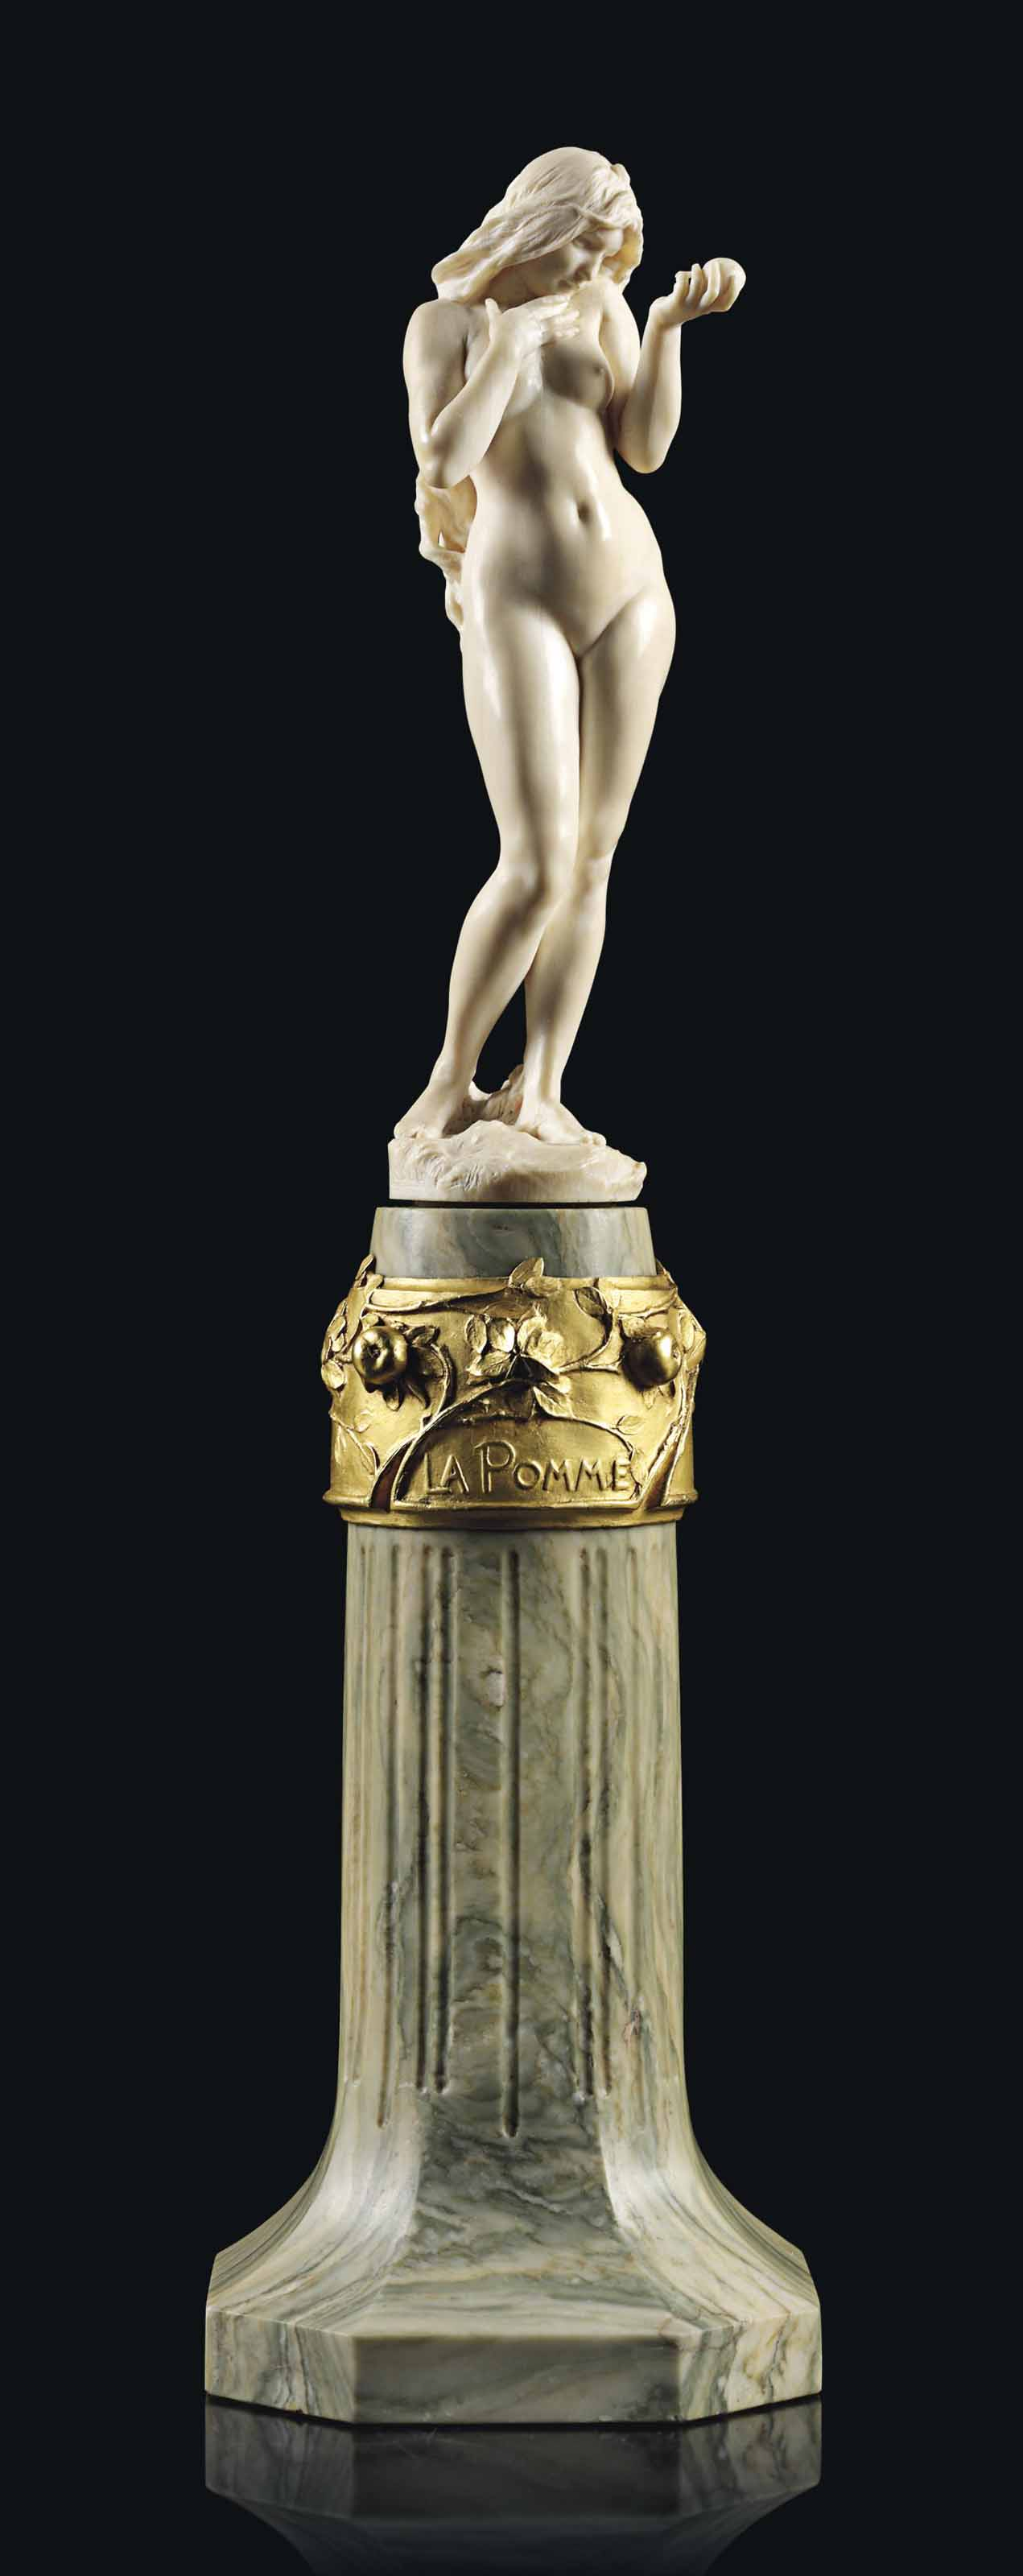 A FRENCH IVORY FIGURE OF EVE, ENTITLED 'LA POMME'